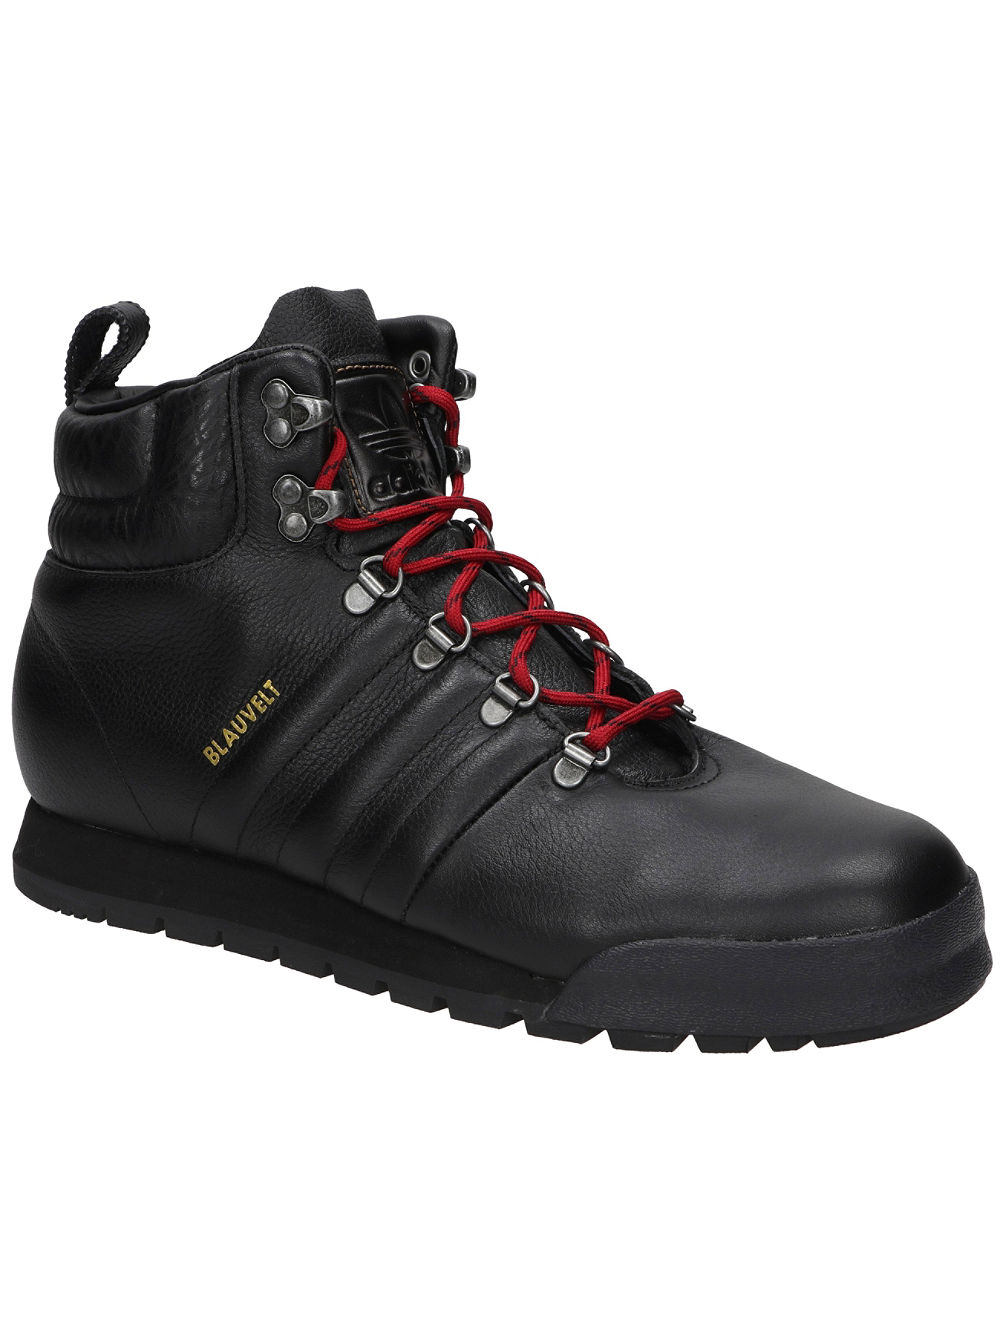 brand new 739ca 0fa2a adidas Snowboarding Jake Blauvelt Boot Shoes